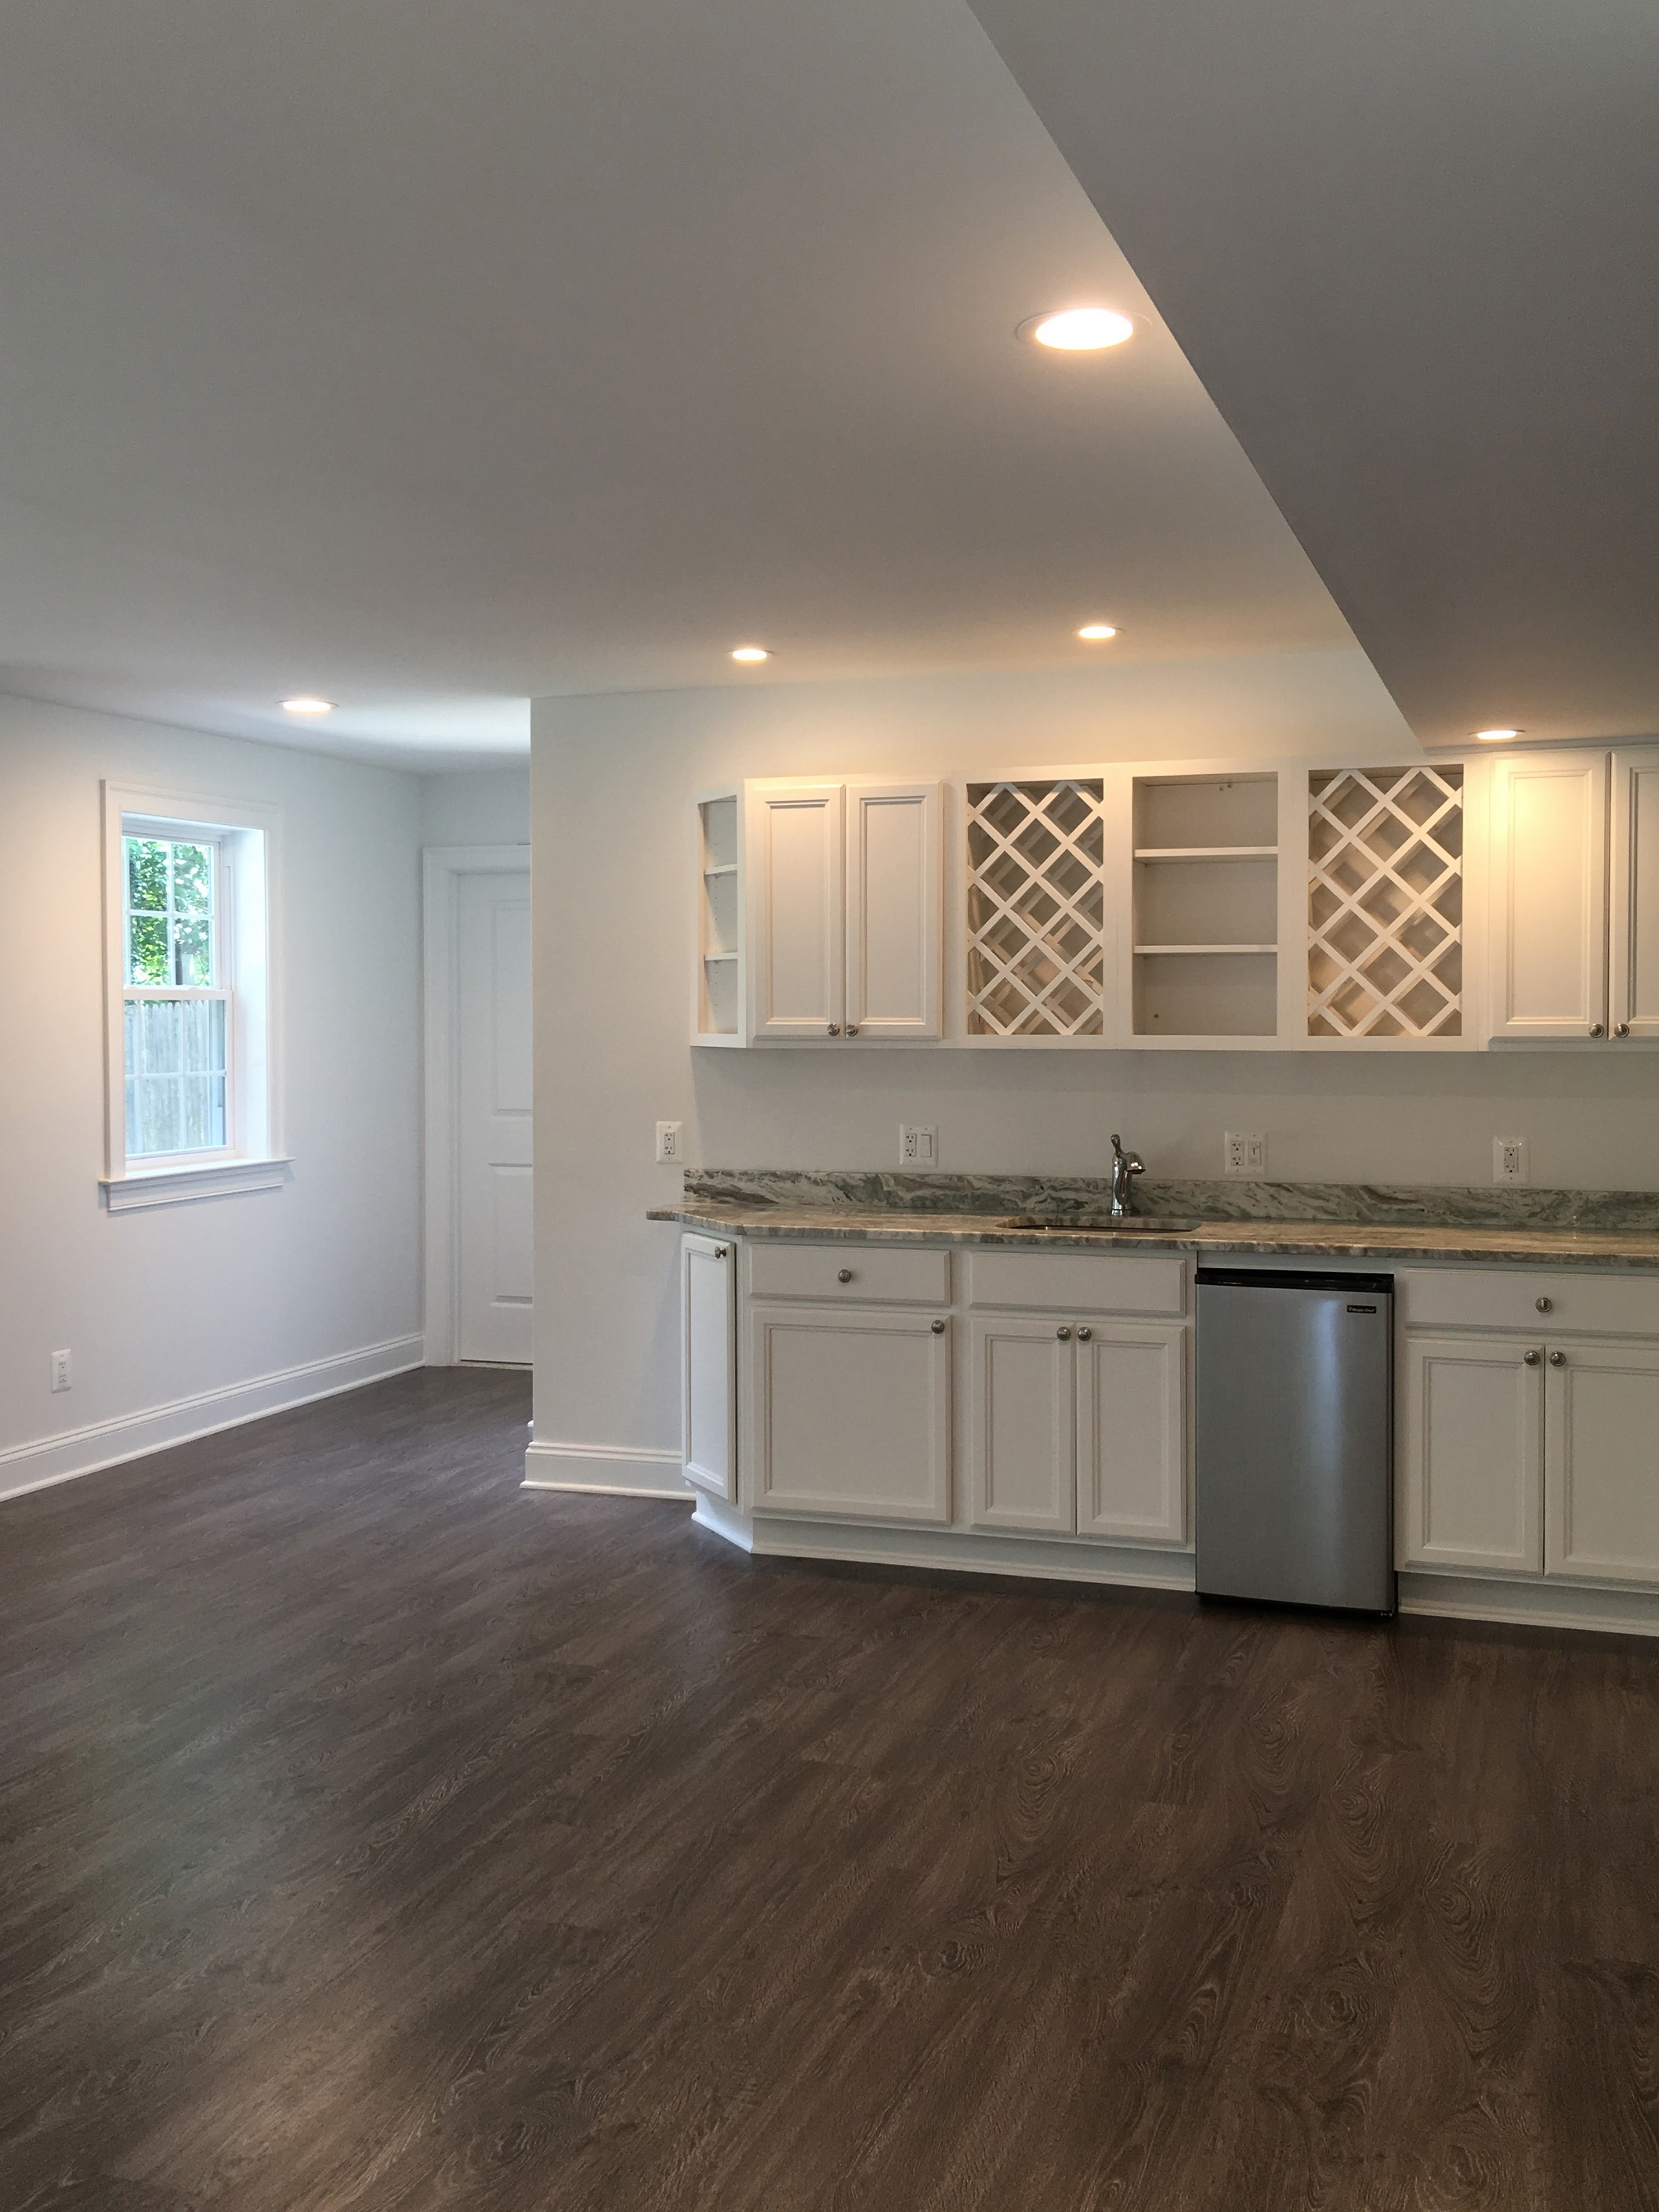 Basement Remodeling Contractor in Loudon County, Virginia